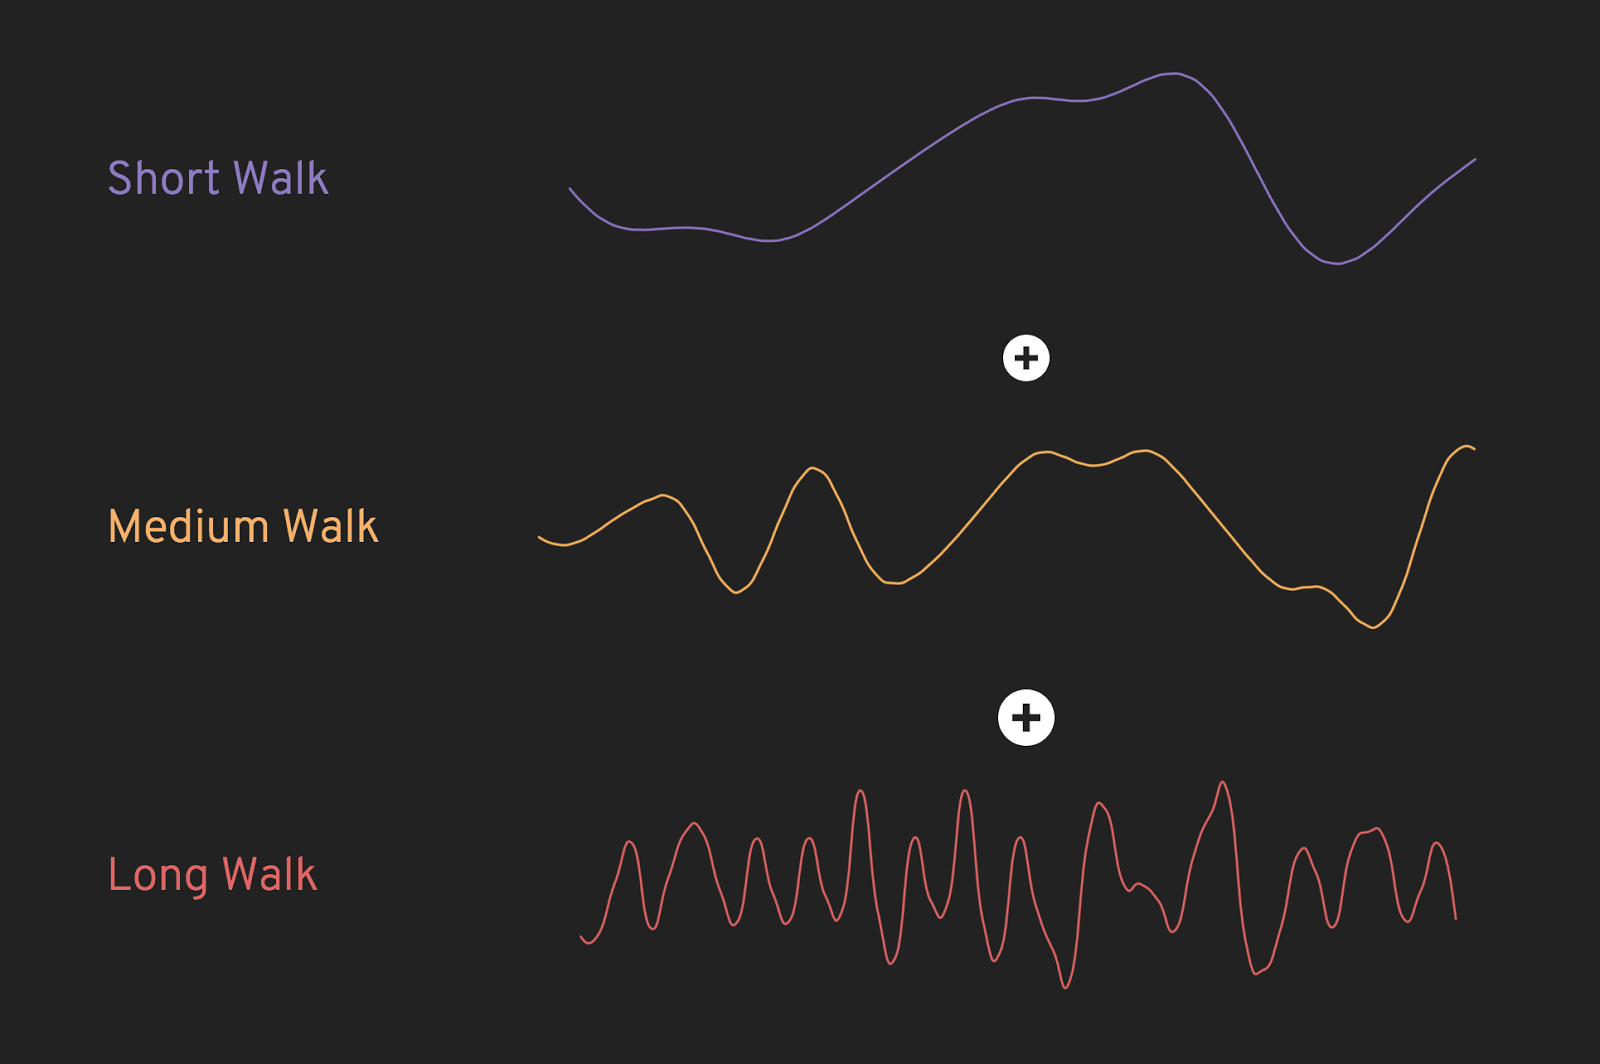 Summing different walks across the perlin noise function